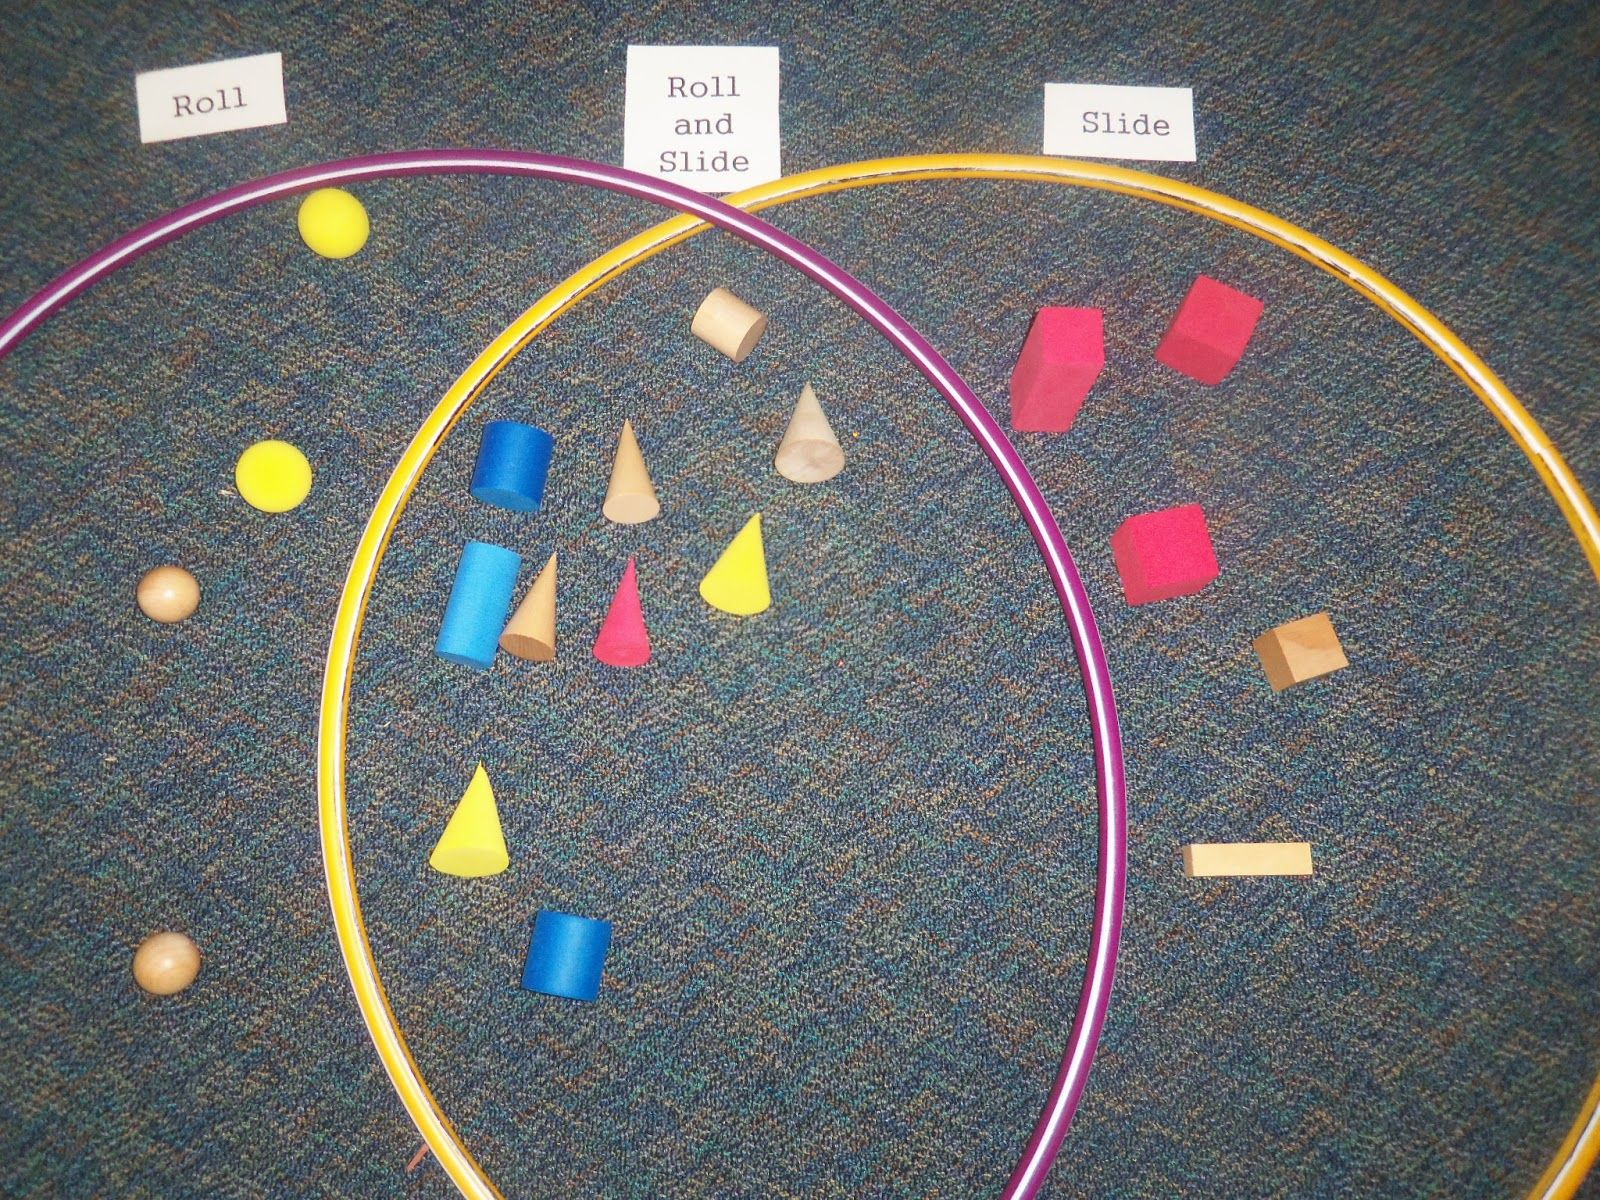 Sorting 3d shapes a fun whole group activity 2g1 pinterest 3 d shapes roll and slide venn a recording sheet would go great so students can compare after they visually sort ccuart Images